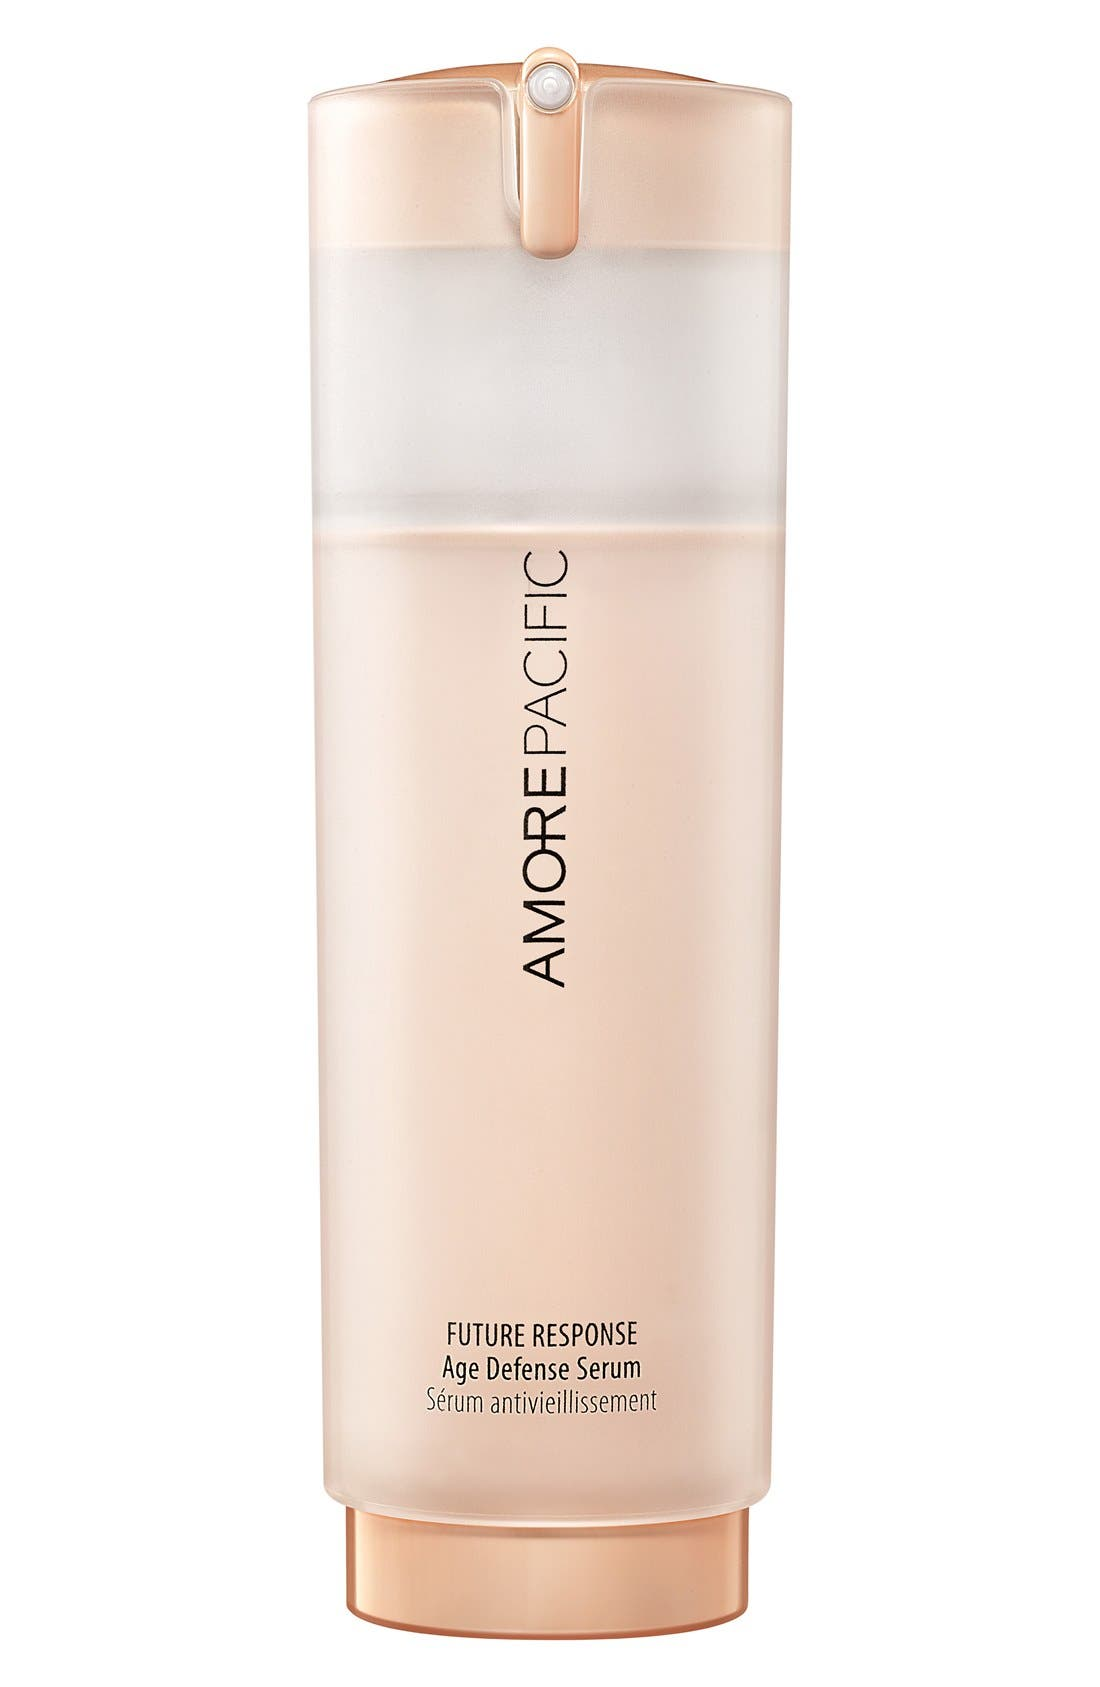 AMOREPACIFIC 'Future Response' Age Defense Serum